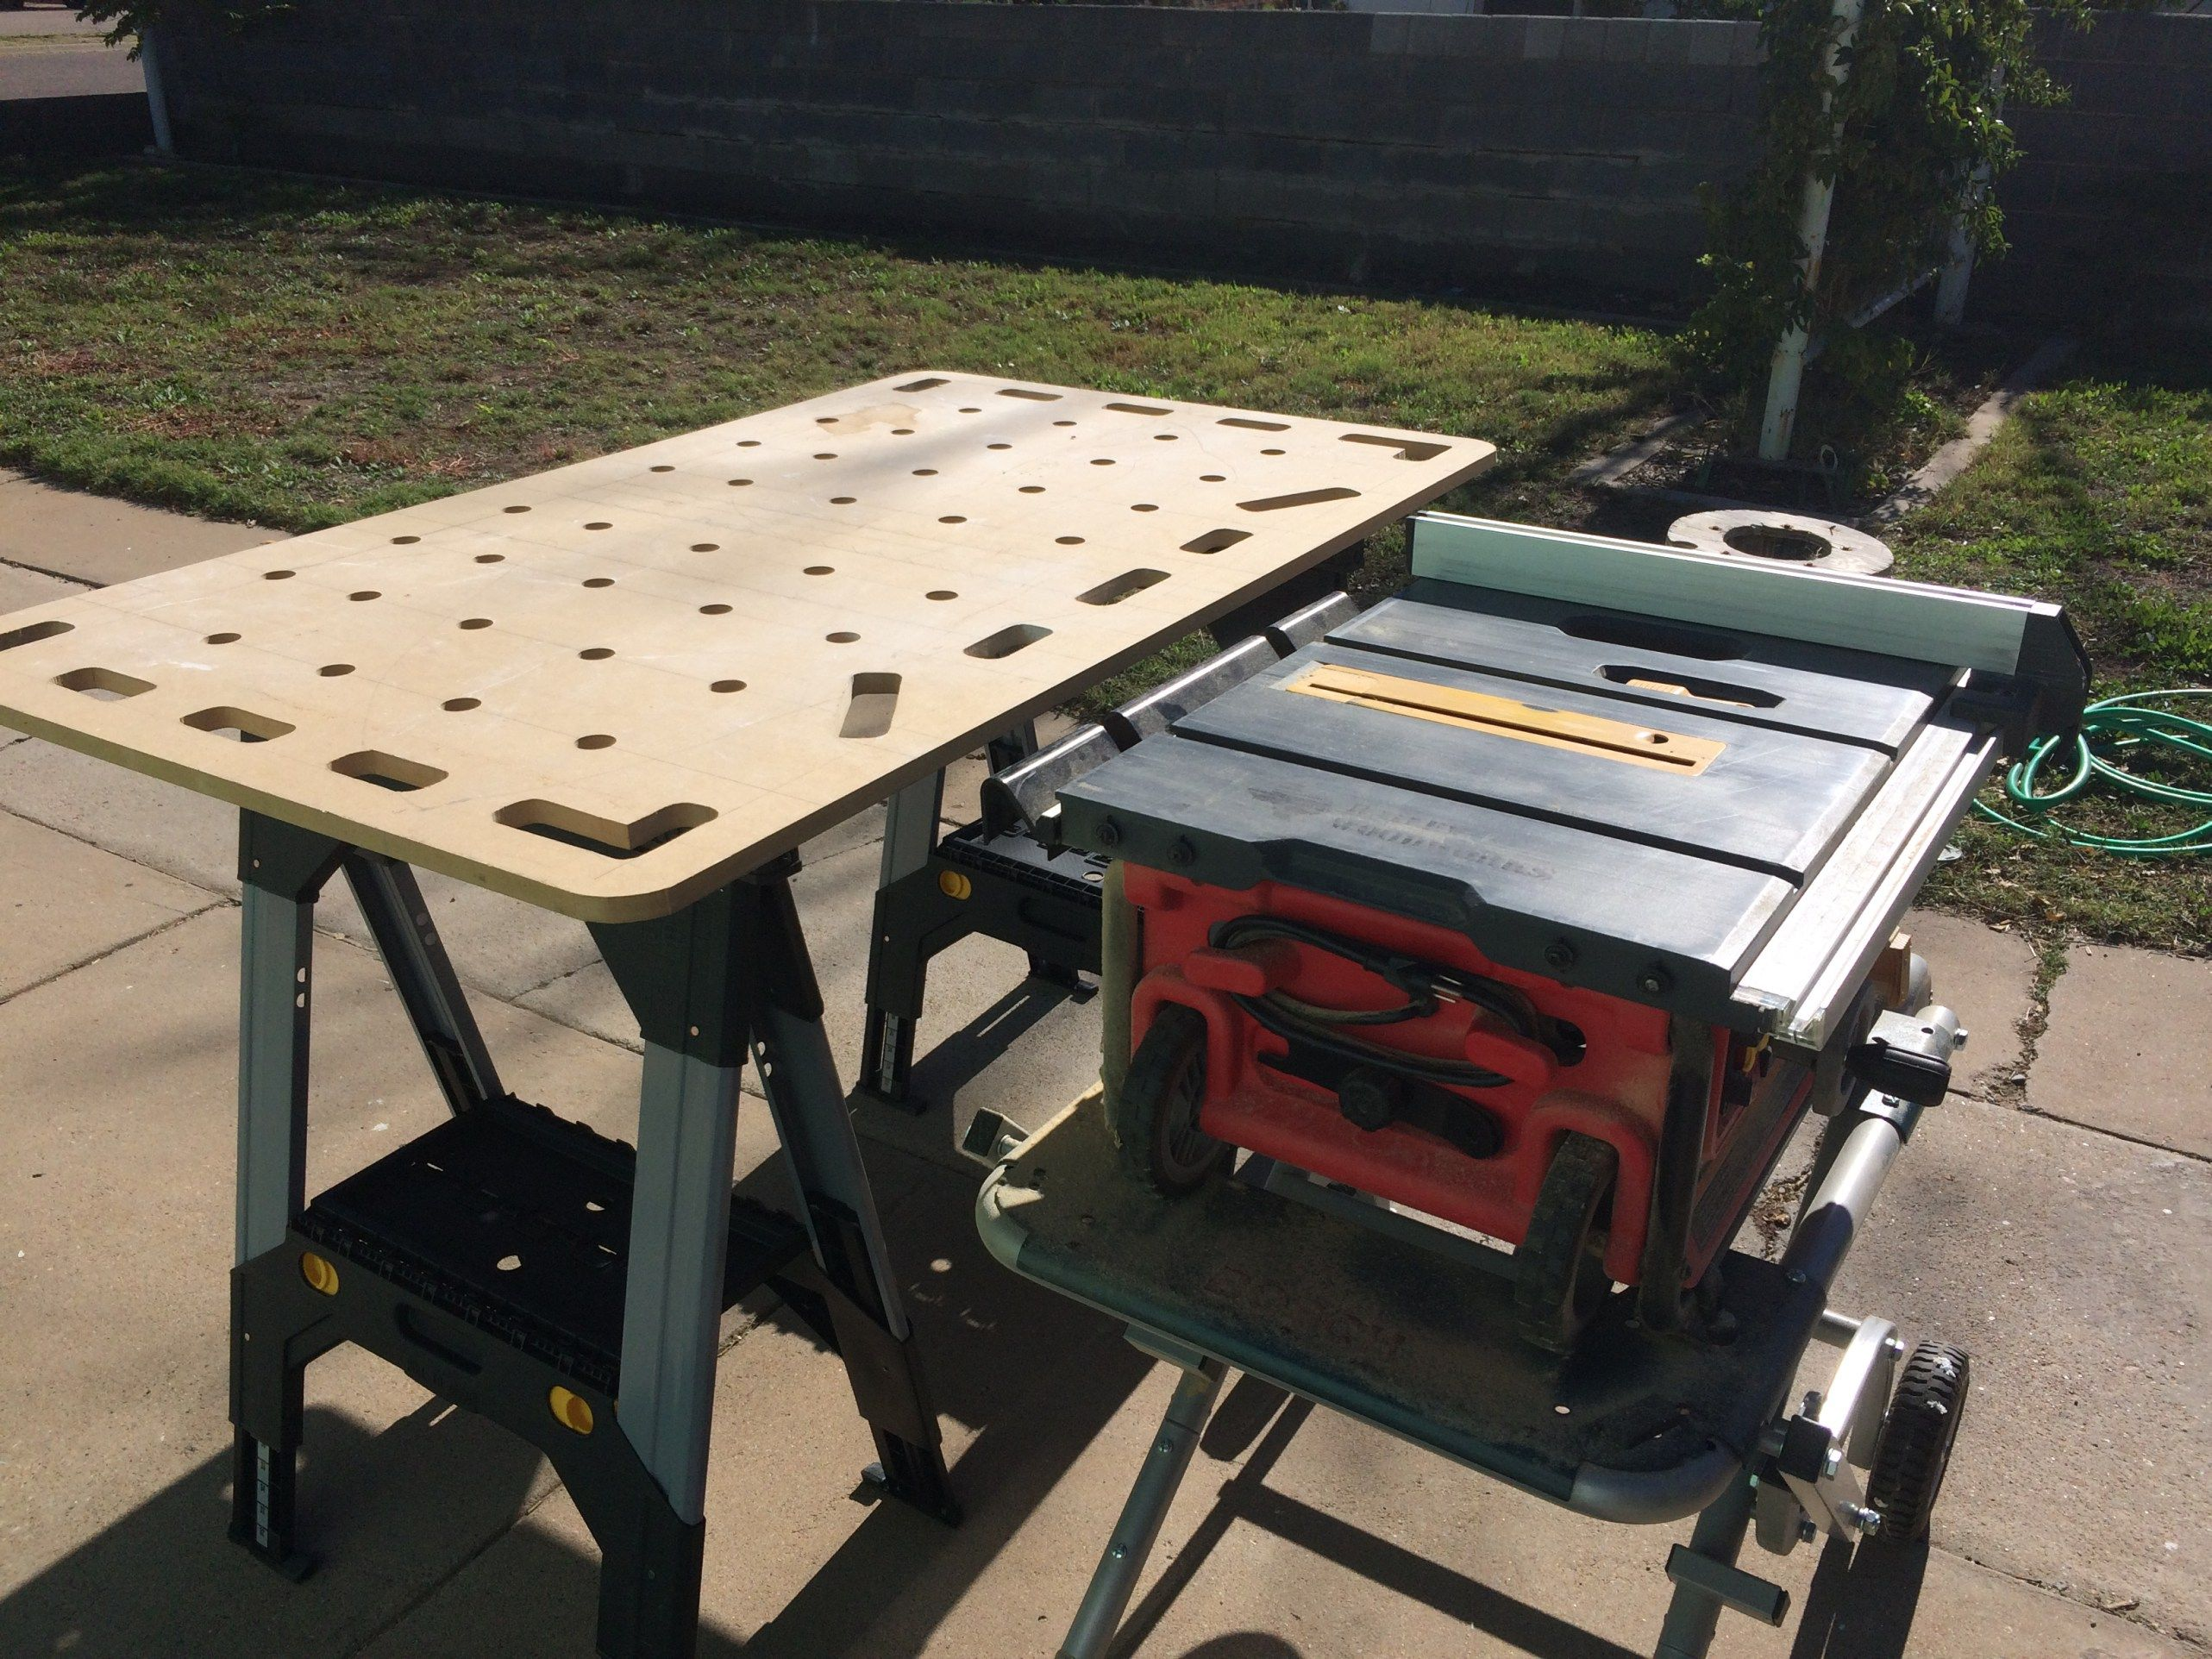 With Adjustable Height Saw Horses I M Able To Use The Mfslab As An Outfeed Table Portable Table Saw Table Saw Portable Work Table